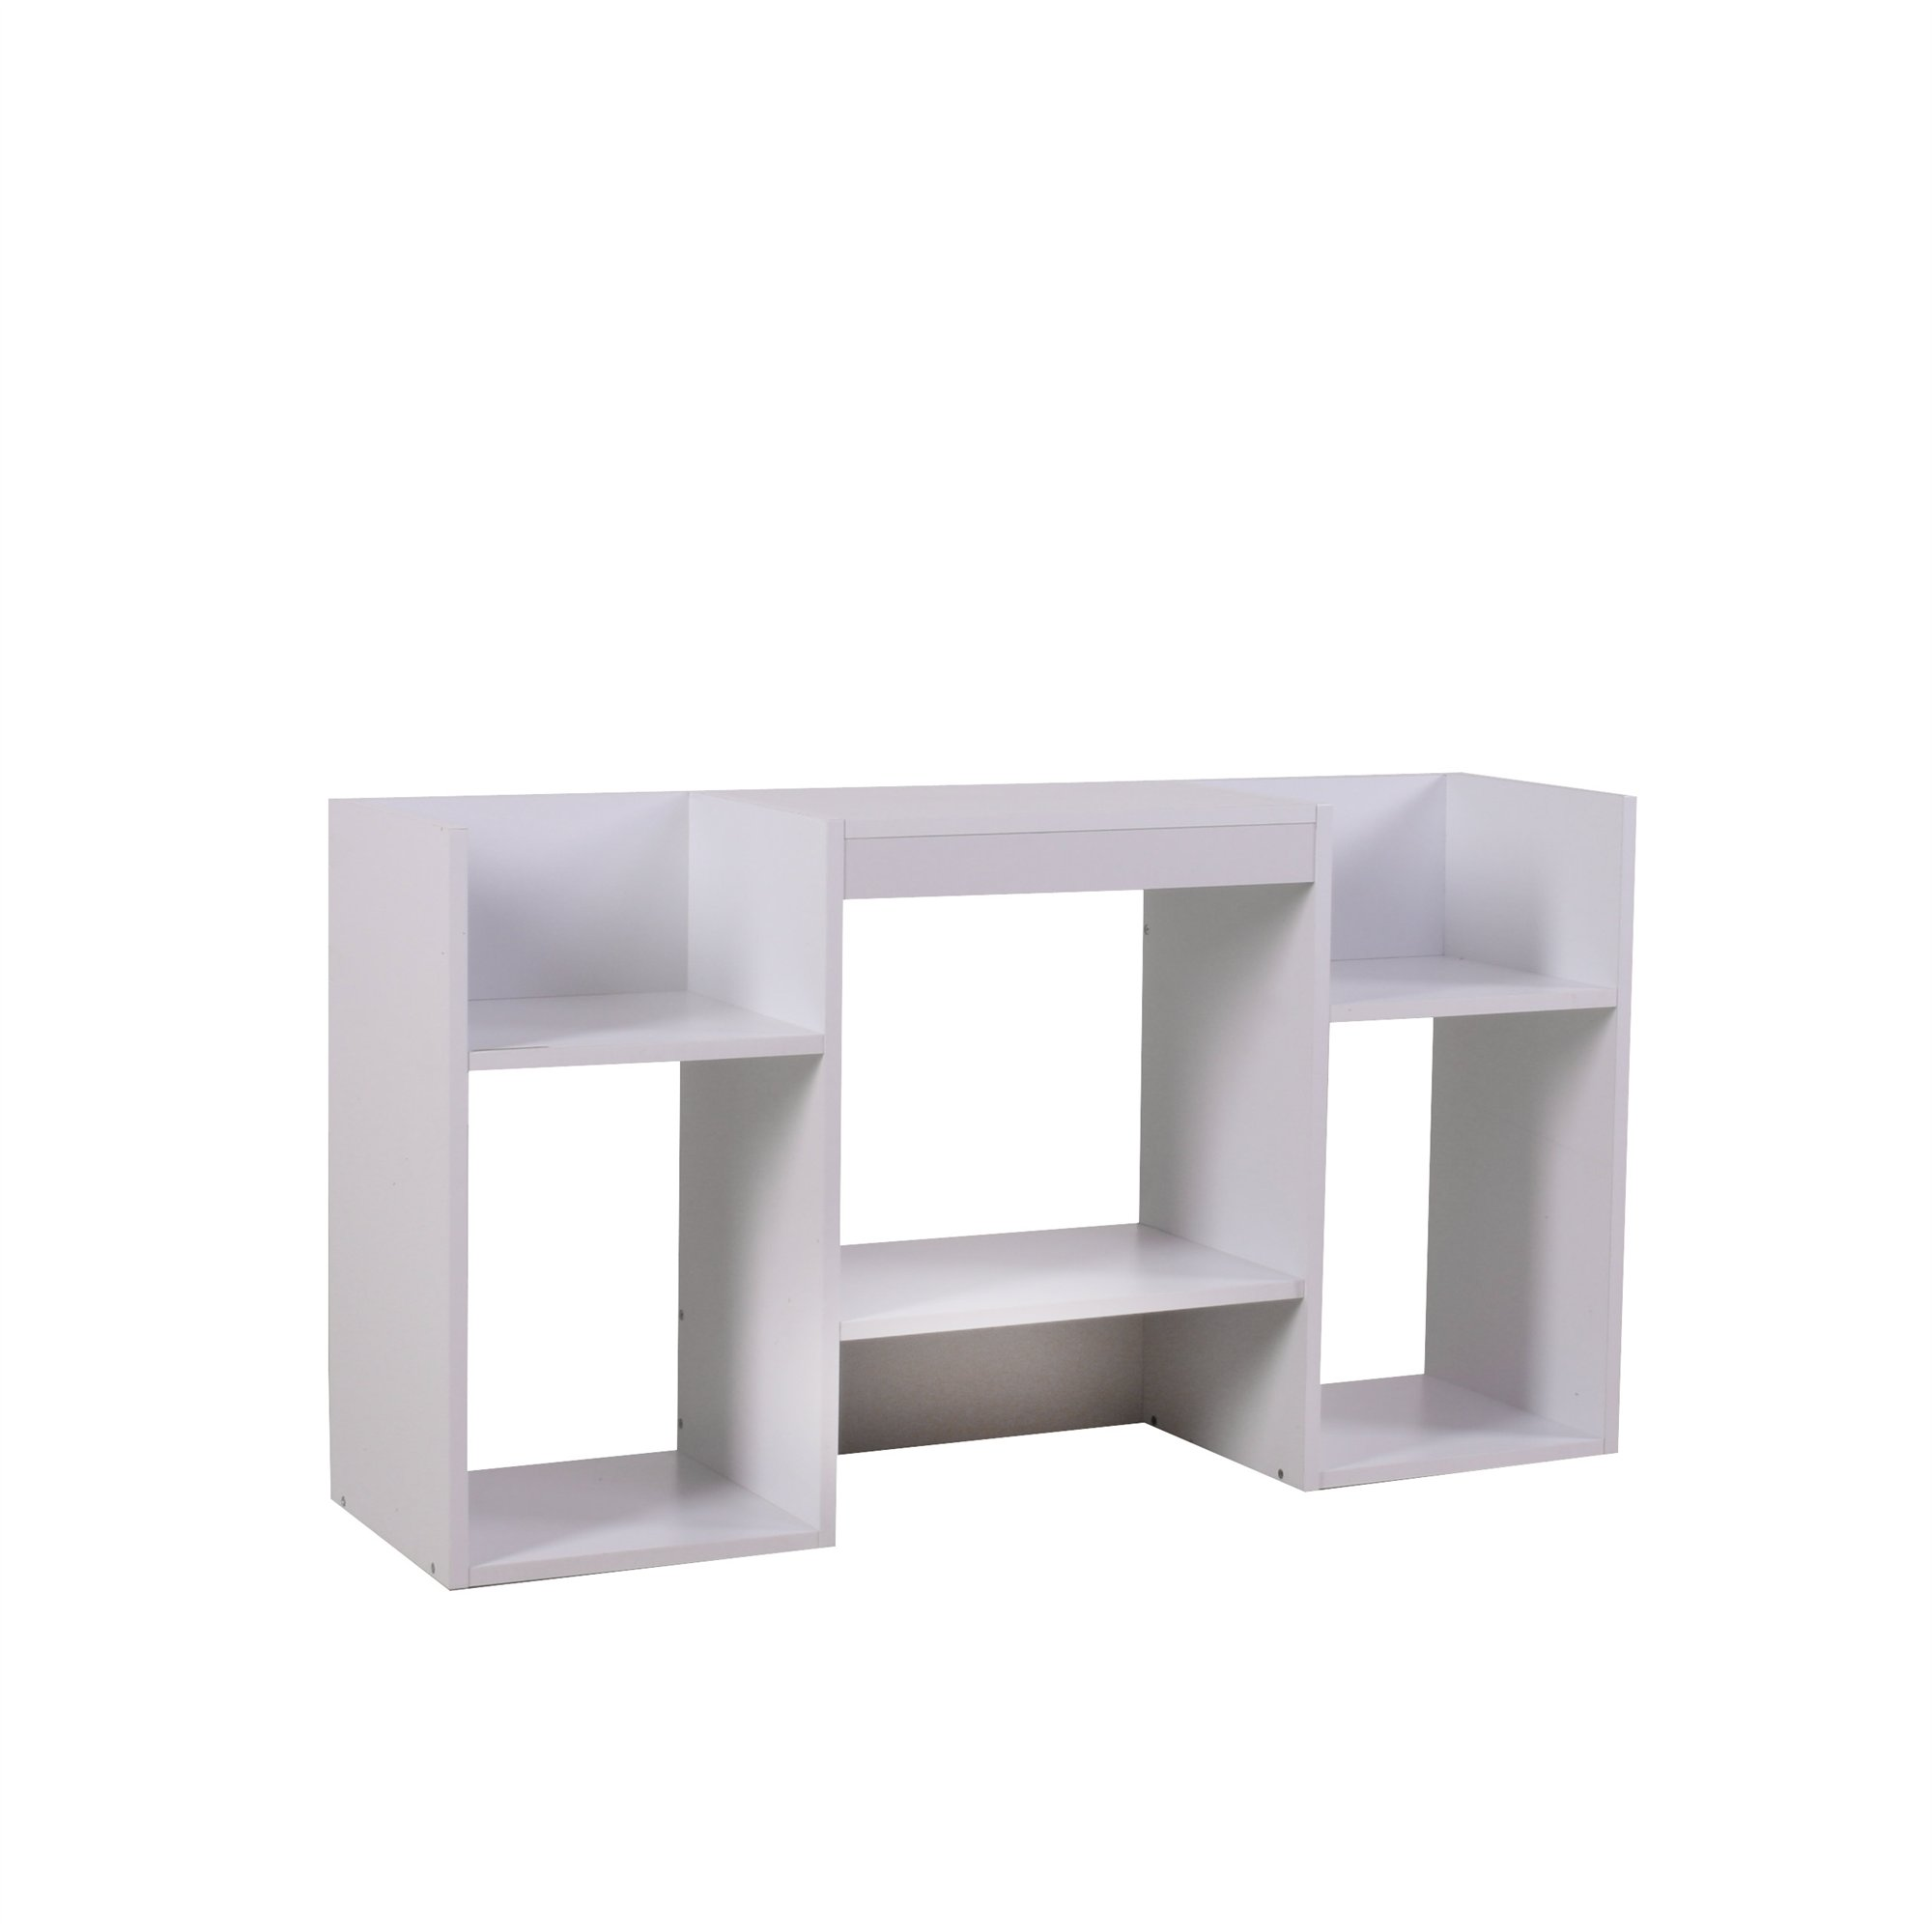 Mueble para tv soporte para tv de dise o 109x59x30 cm blanca - Perchas de pared de diseno ...